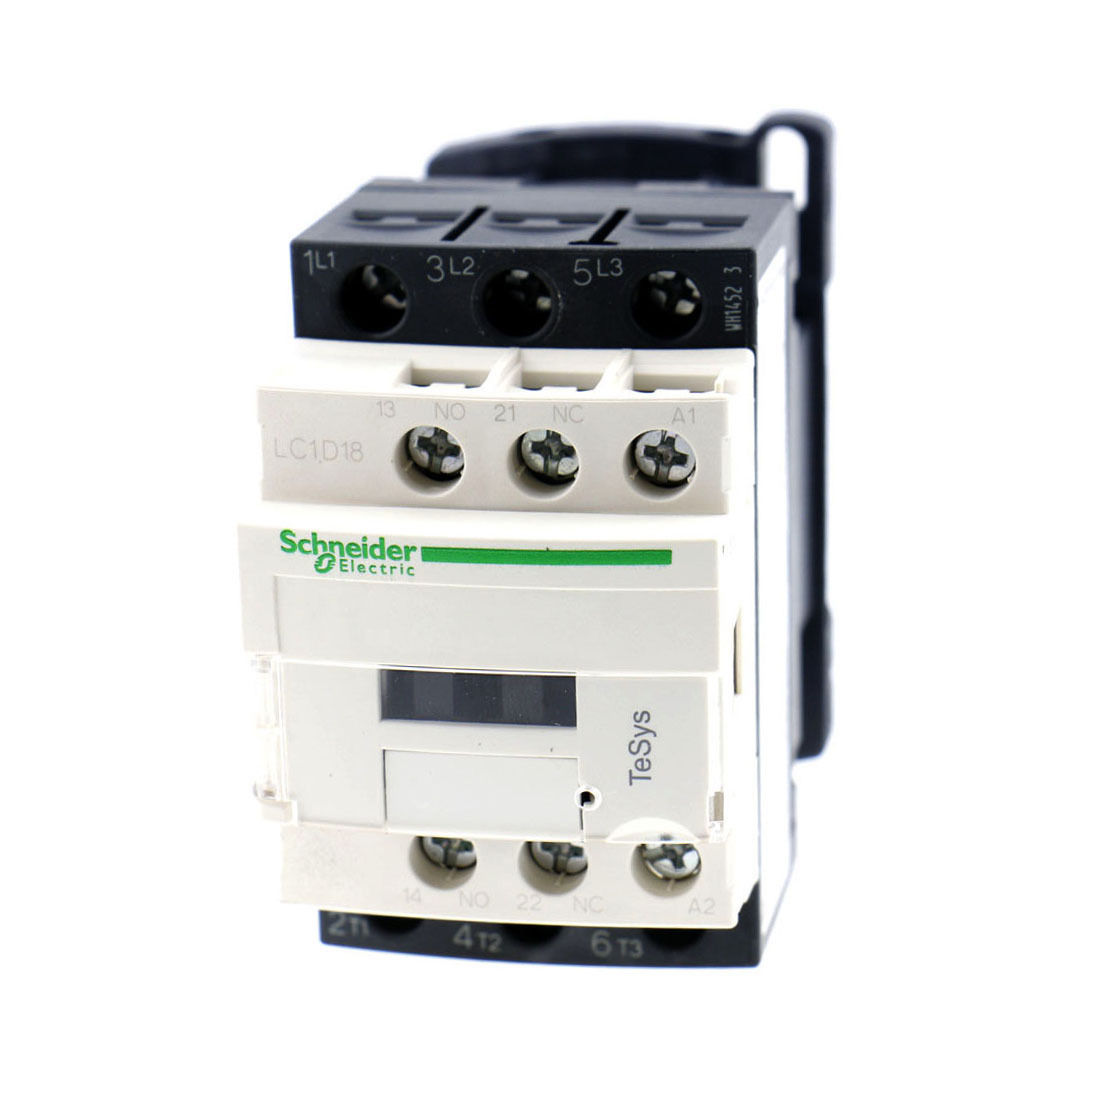 online buy wholesale schneider contactor from china schneider contactor wholesalers. Black Bedroom Furniture Sets. Home Design Ideas